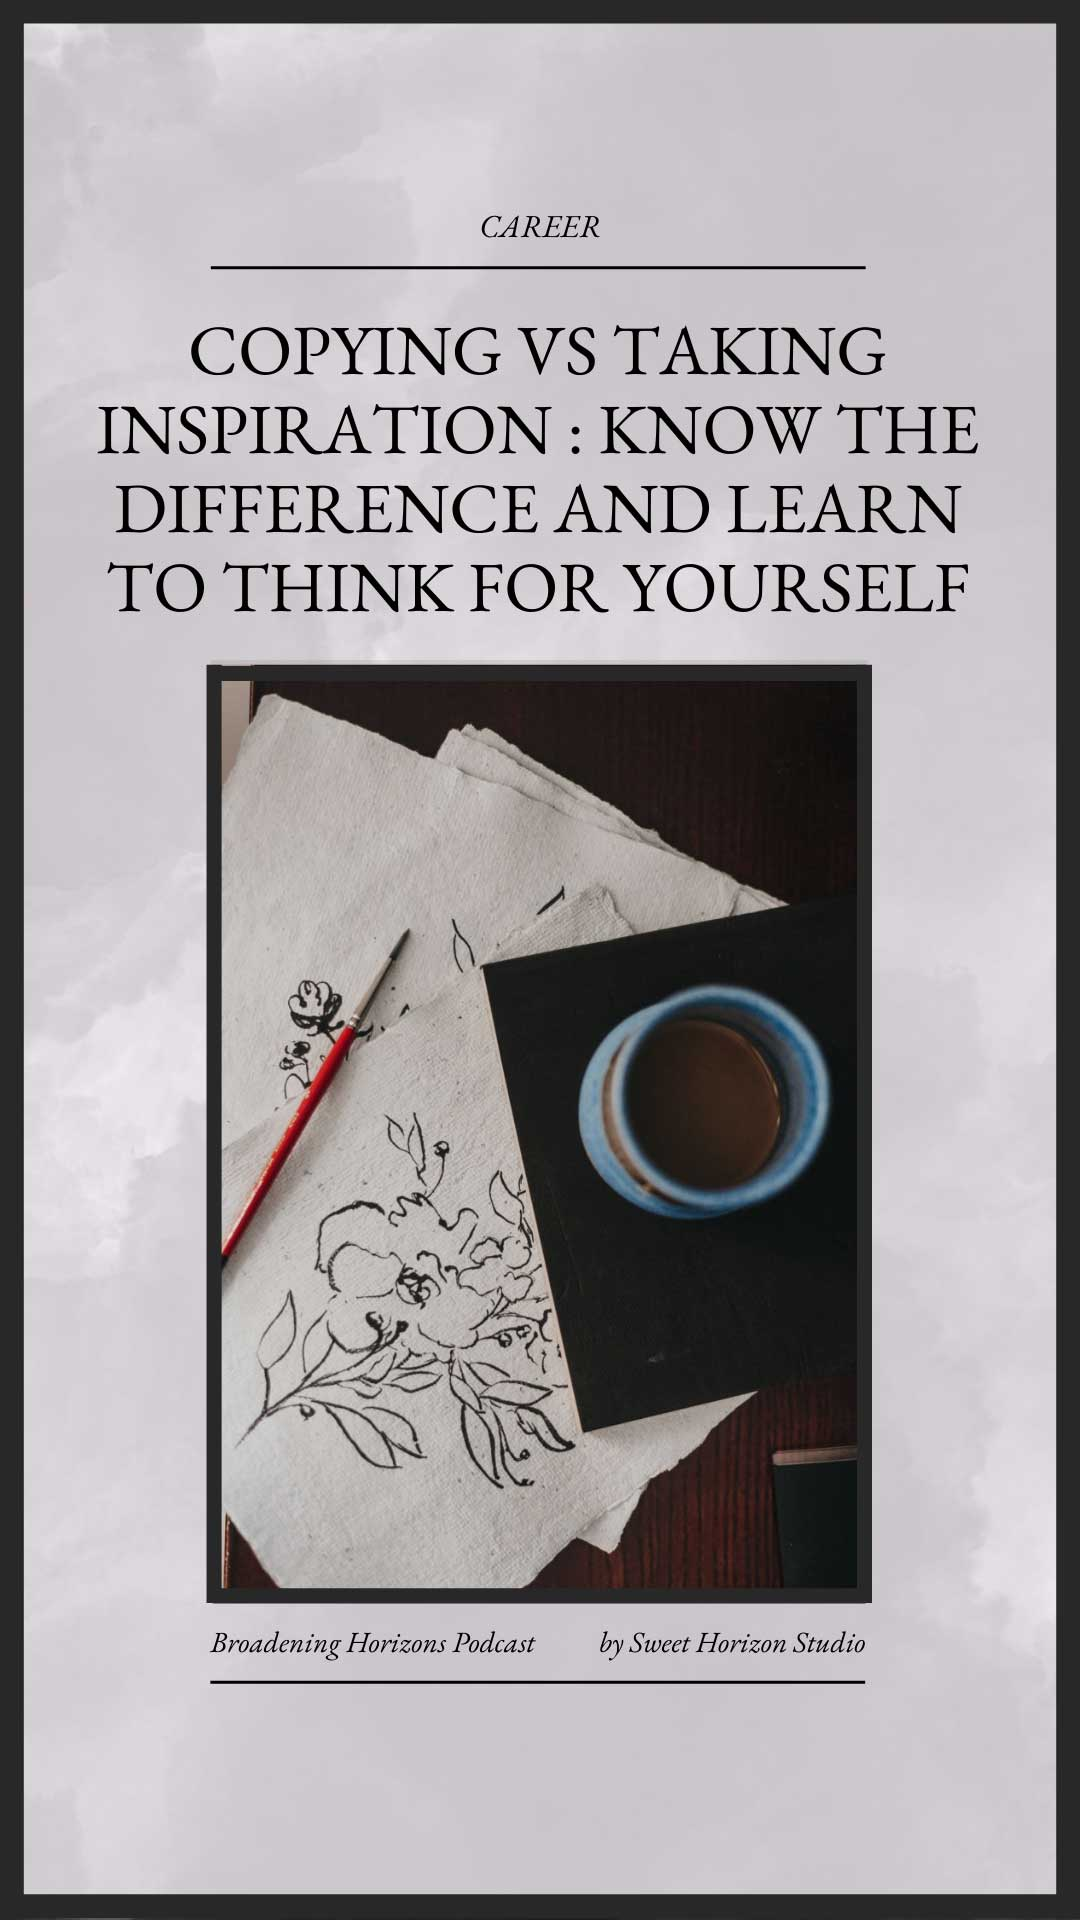 Copying vs Taking Inspiration : Know the Difference and Learn to Think for Yourself from www.sweethorizonblog.com